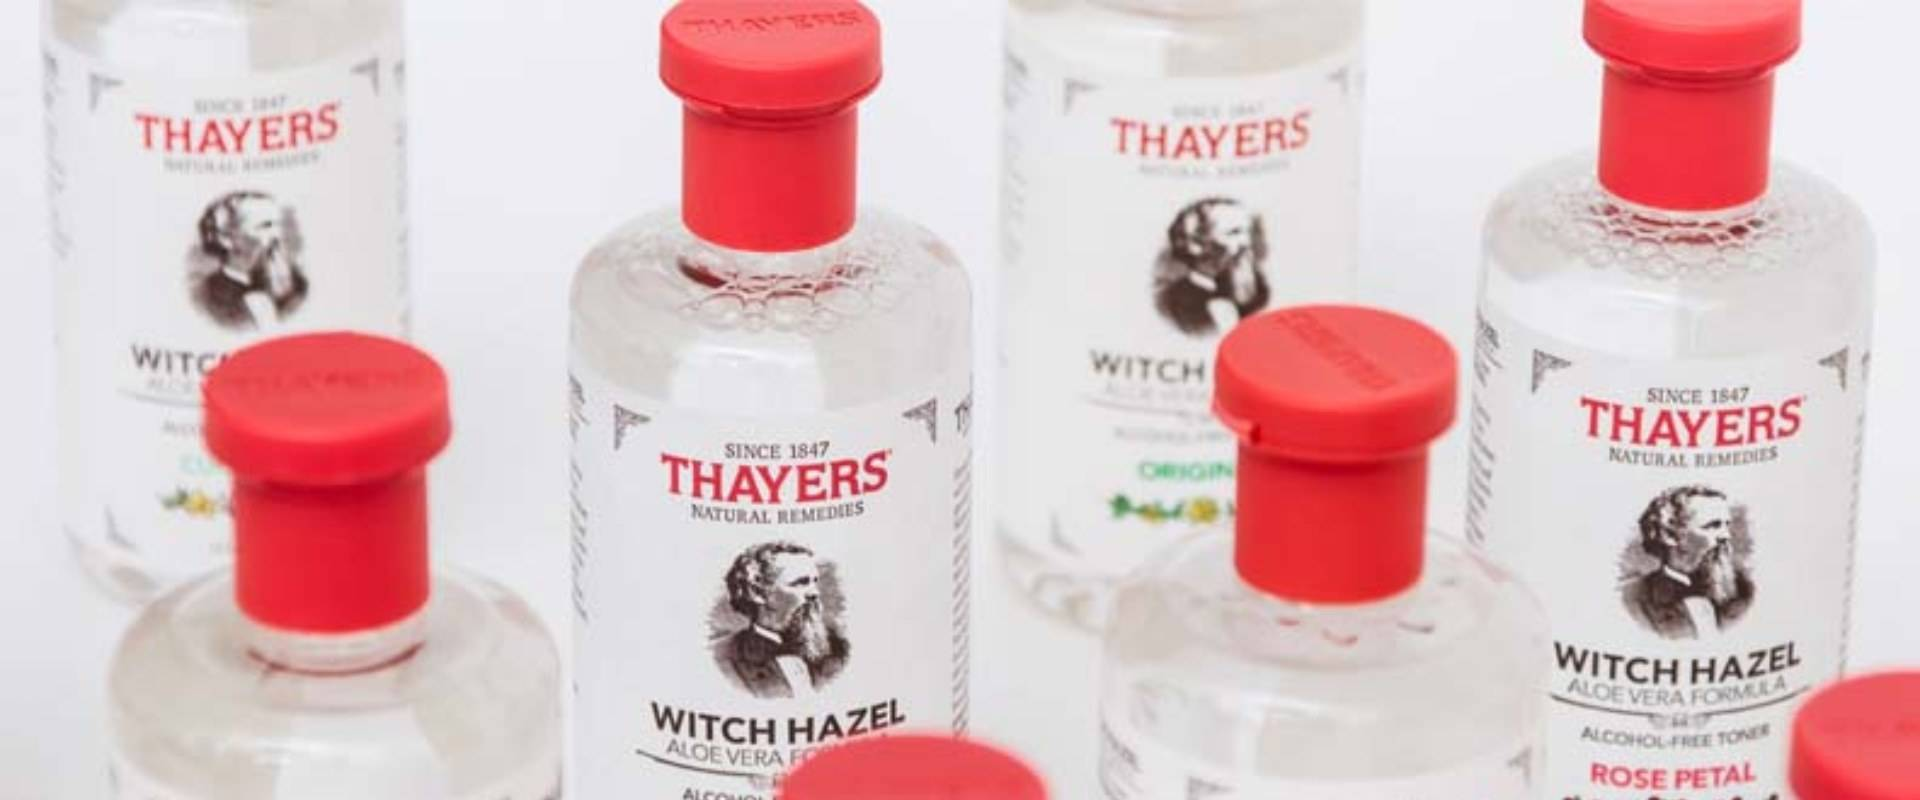 Thayers Natural Remedies 1920x800